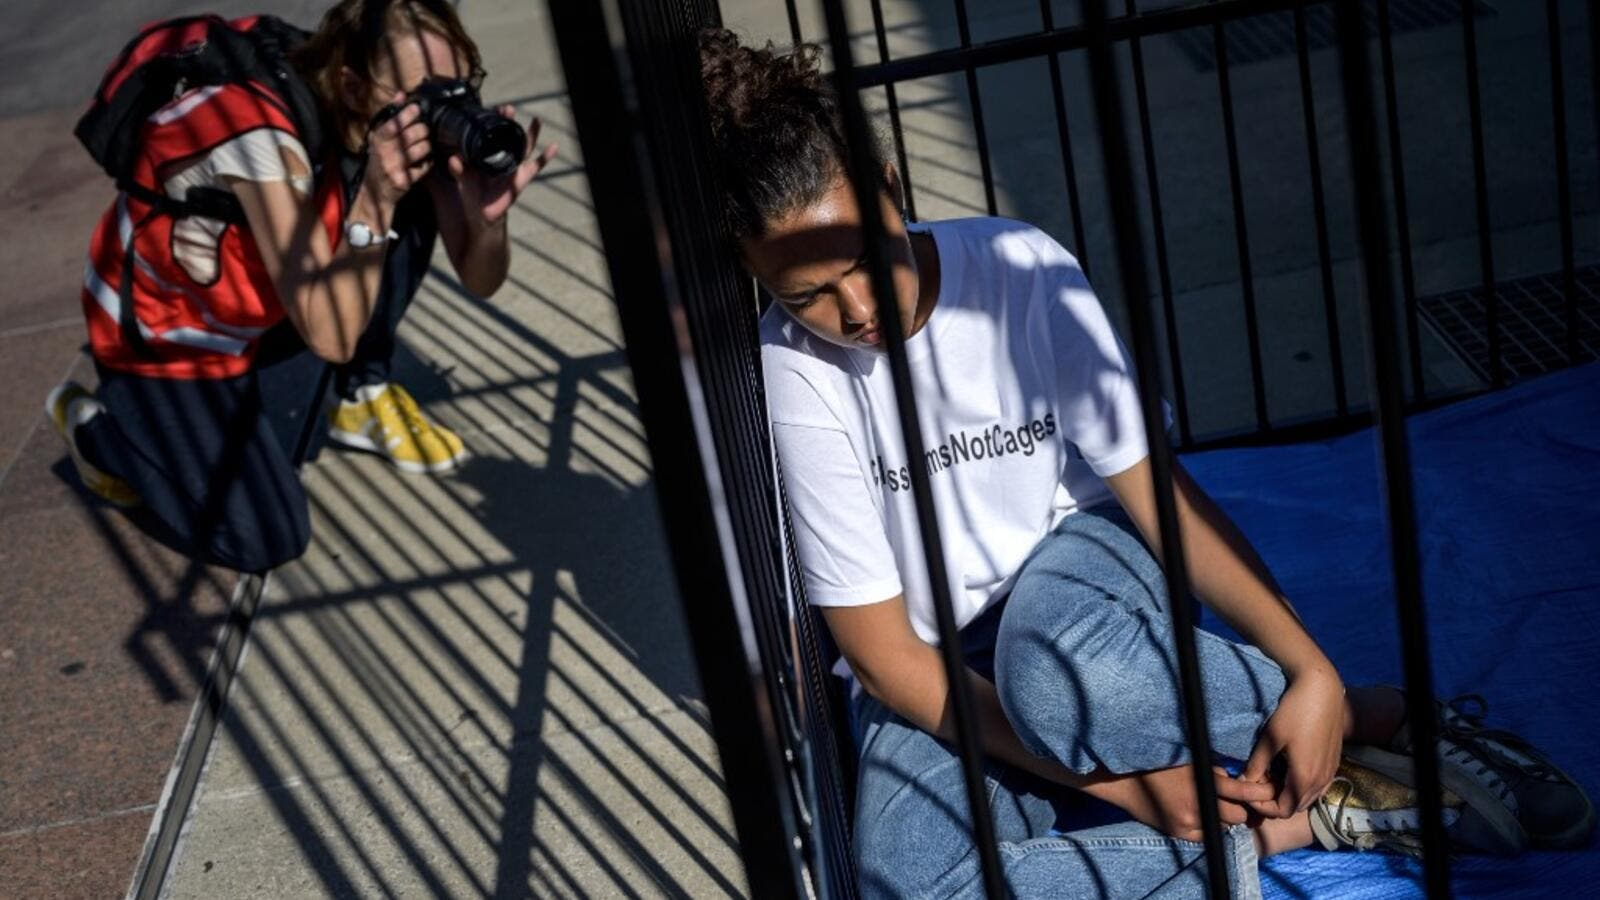 A photographer takes a picture of a teenager sitting in a cage during a protest of international labor groups, civil society and students against the policy of migrant family separation along the US-Mexico border on June 17, 2019 in front of the United Nations offices in Geneva. (FABRICE COFFRINI / AFP)